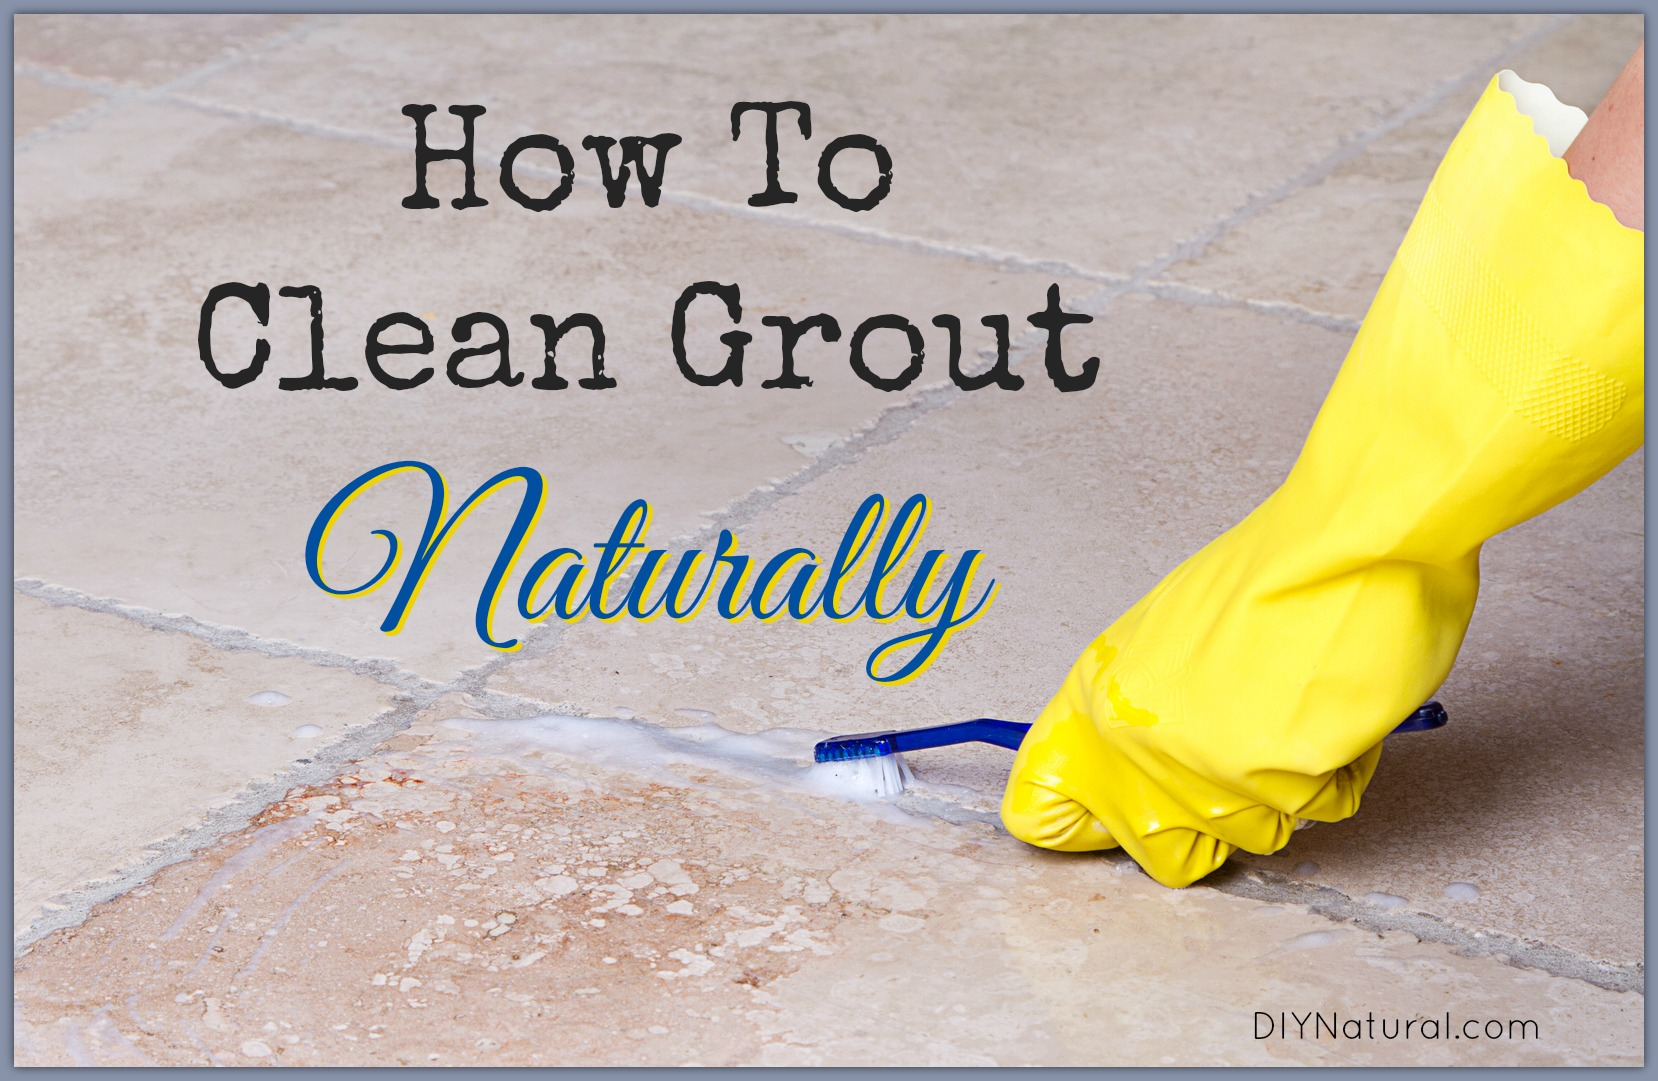 How To Clean Grout A Natural Diy Grout Cleaner That Works Great